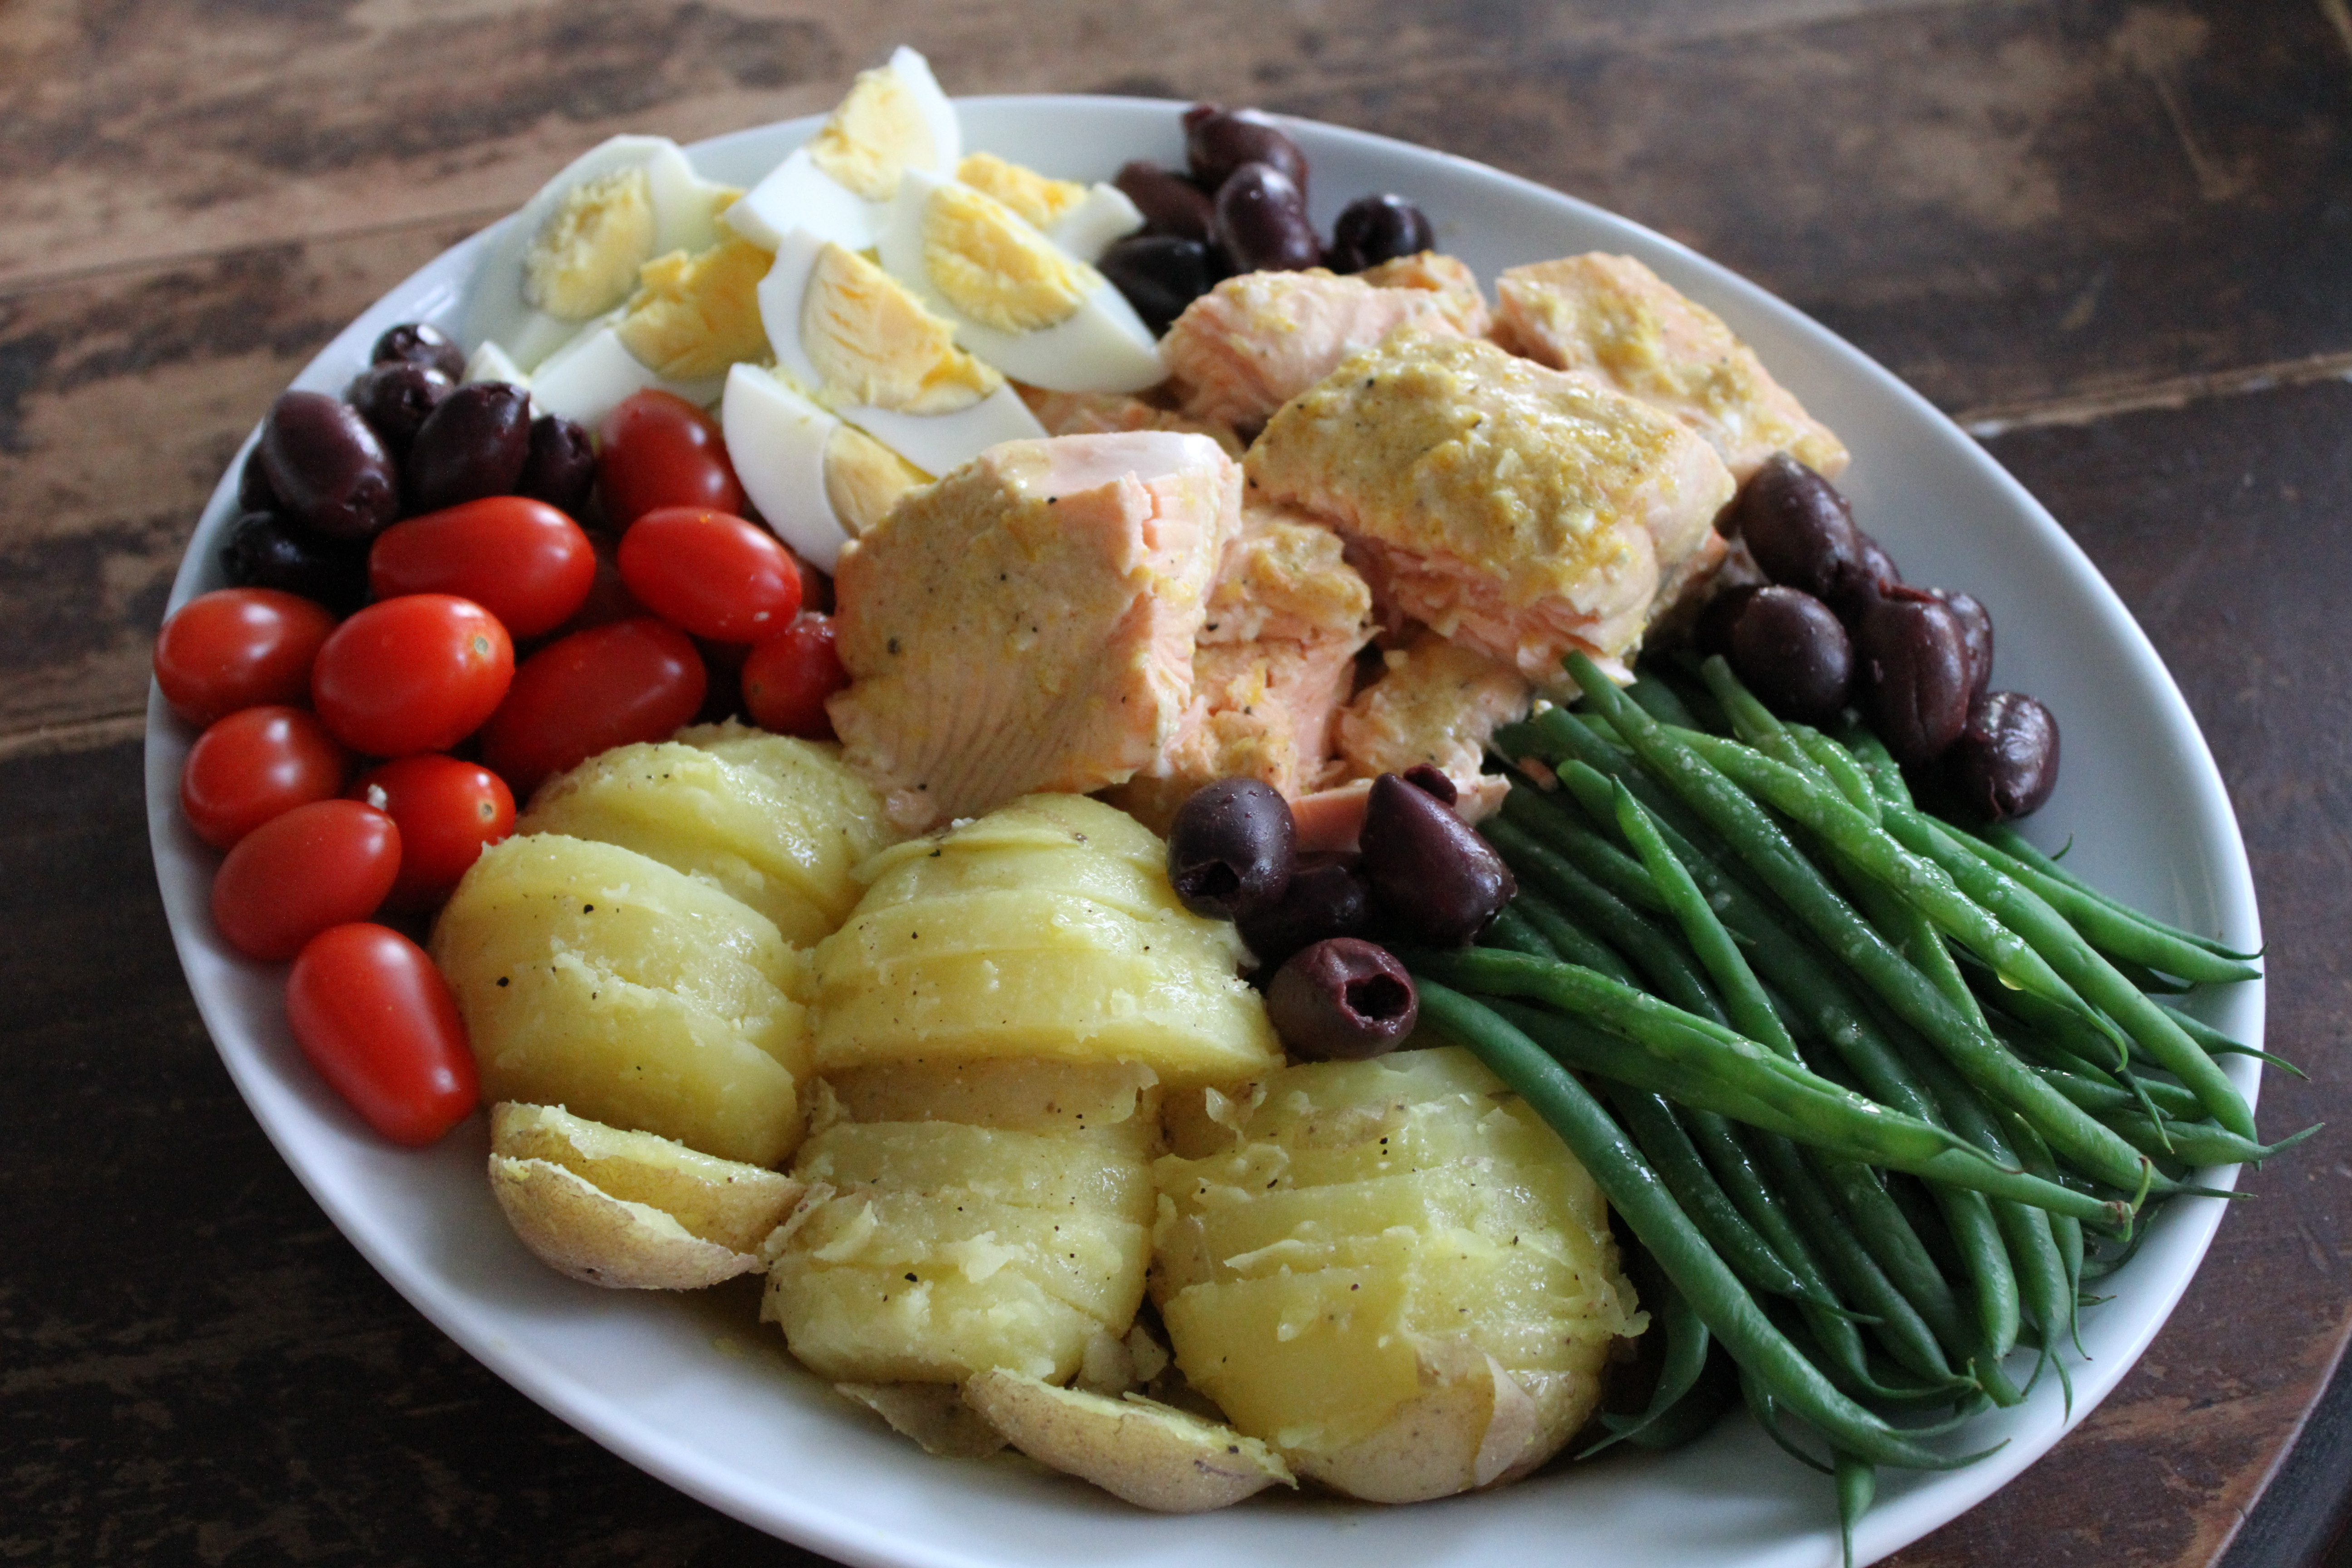 Ina Garten Pantry salmon nicoise - brittany's pantry : brittany's pantry